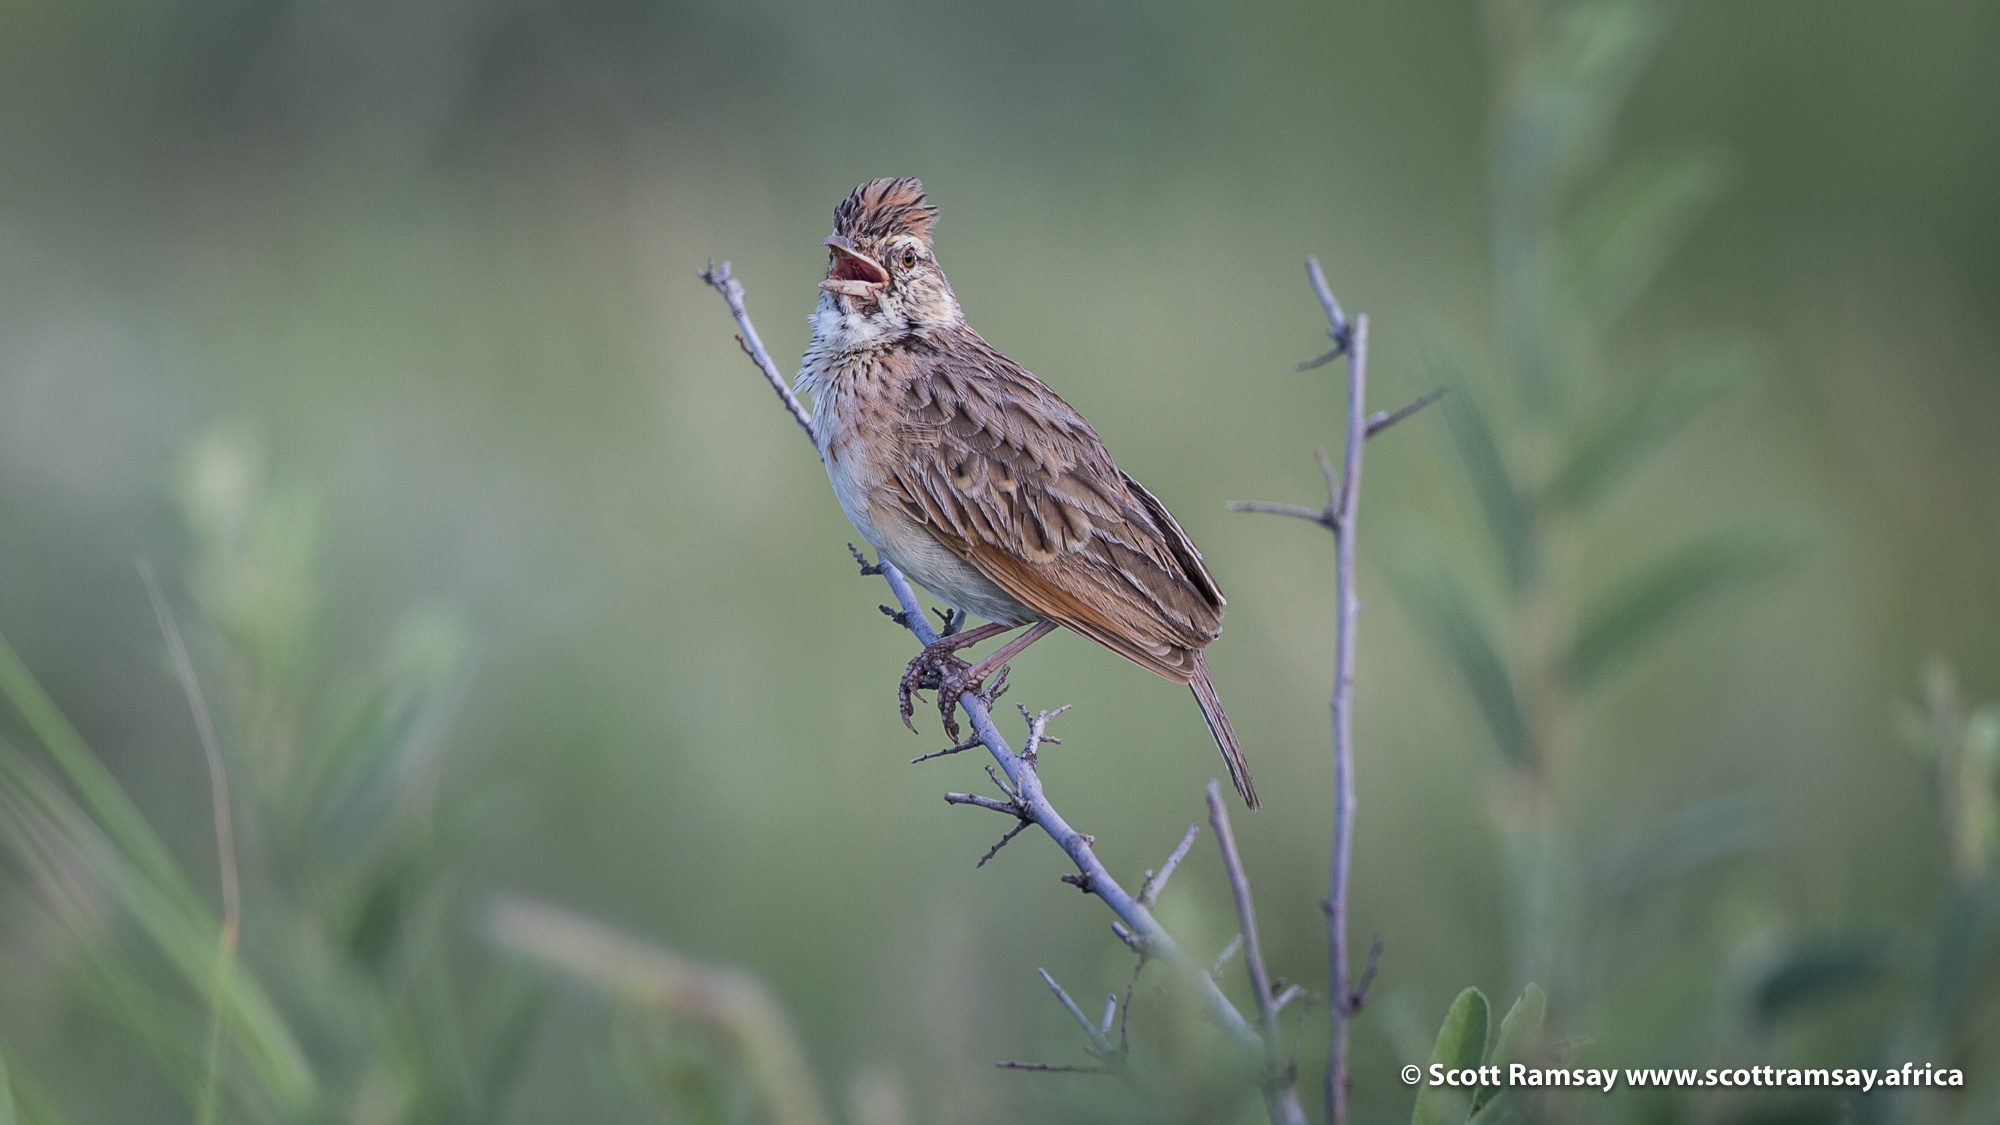 The rufuous-naped larks are the DJs on Radio Kalahari, always chirping, always got lots to say...but at least they sing beautifully!